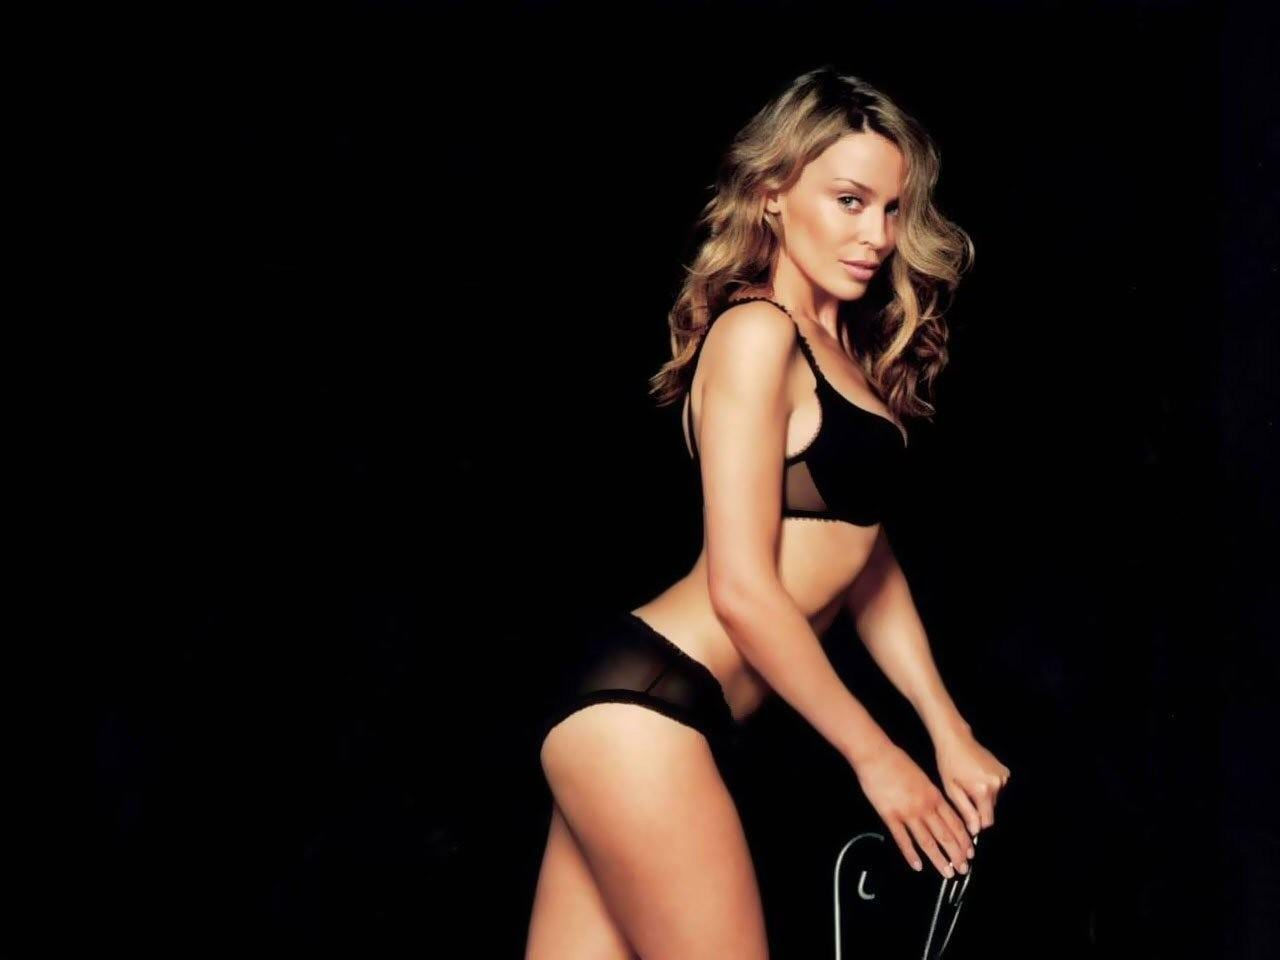 kylie-minogue-posing-on-the-chair-wallpaper-945569654